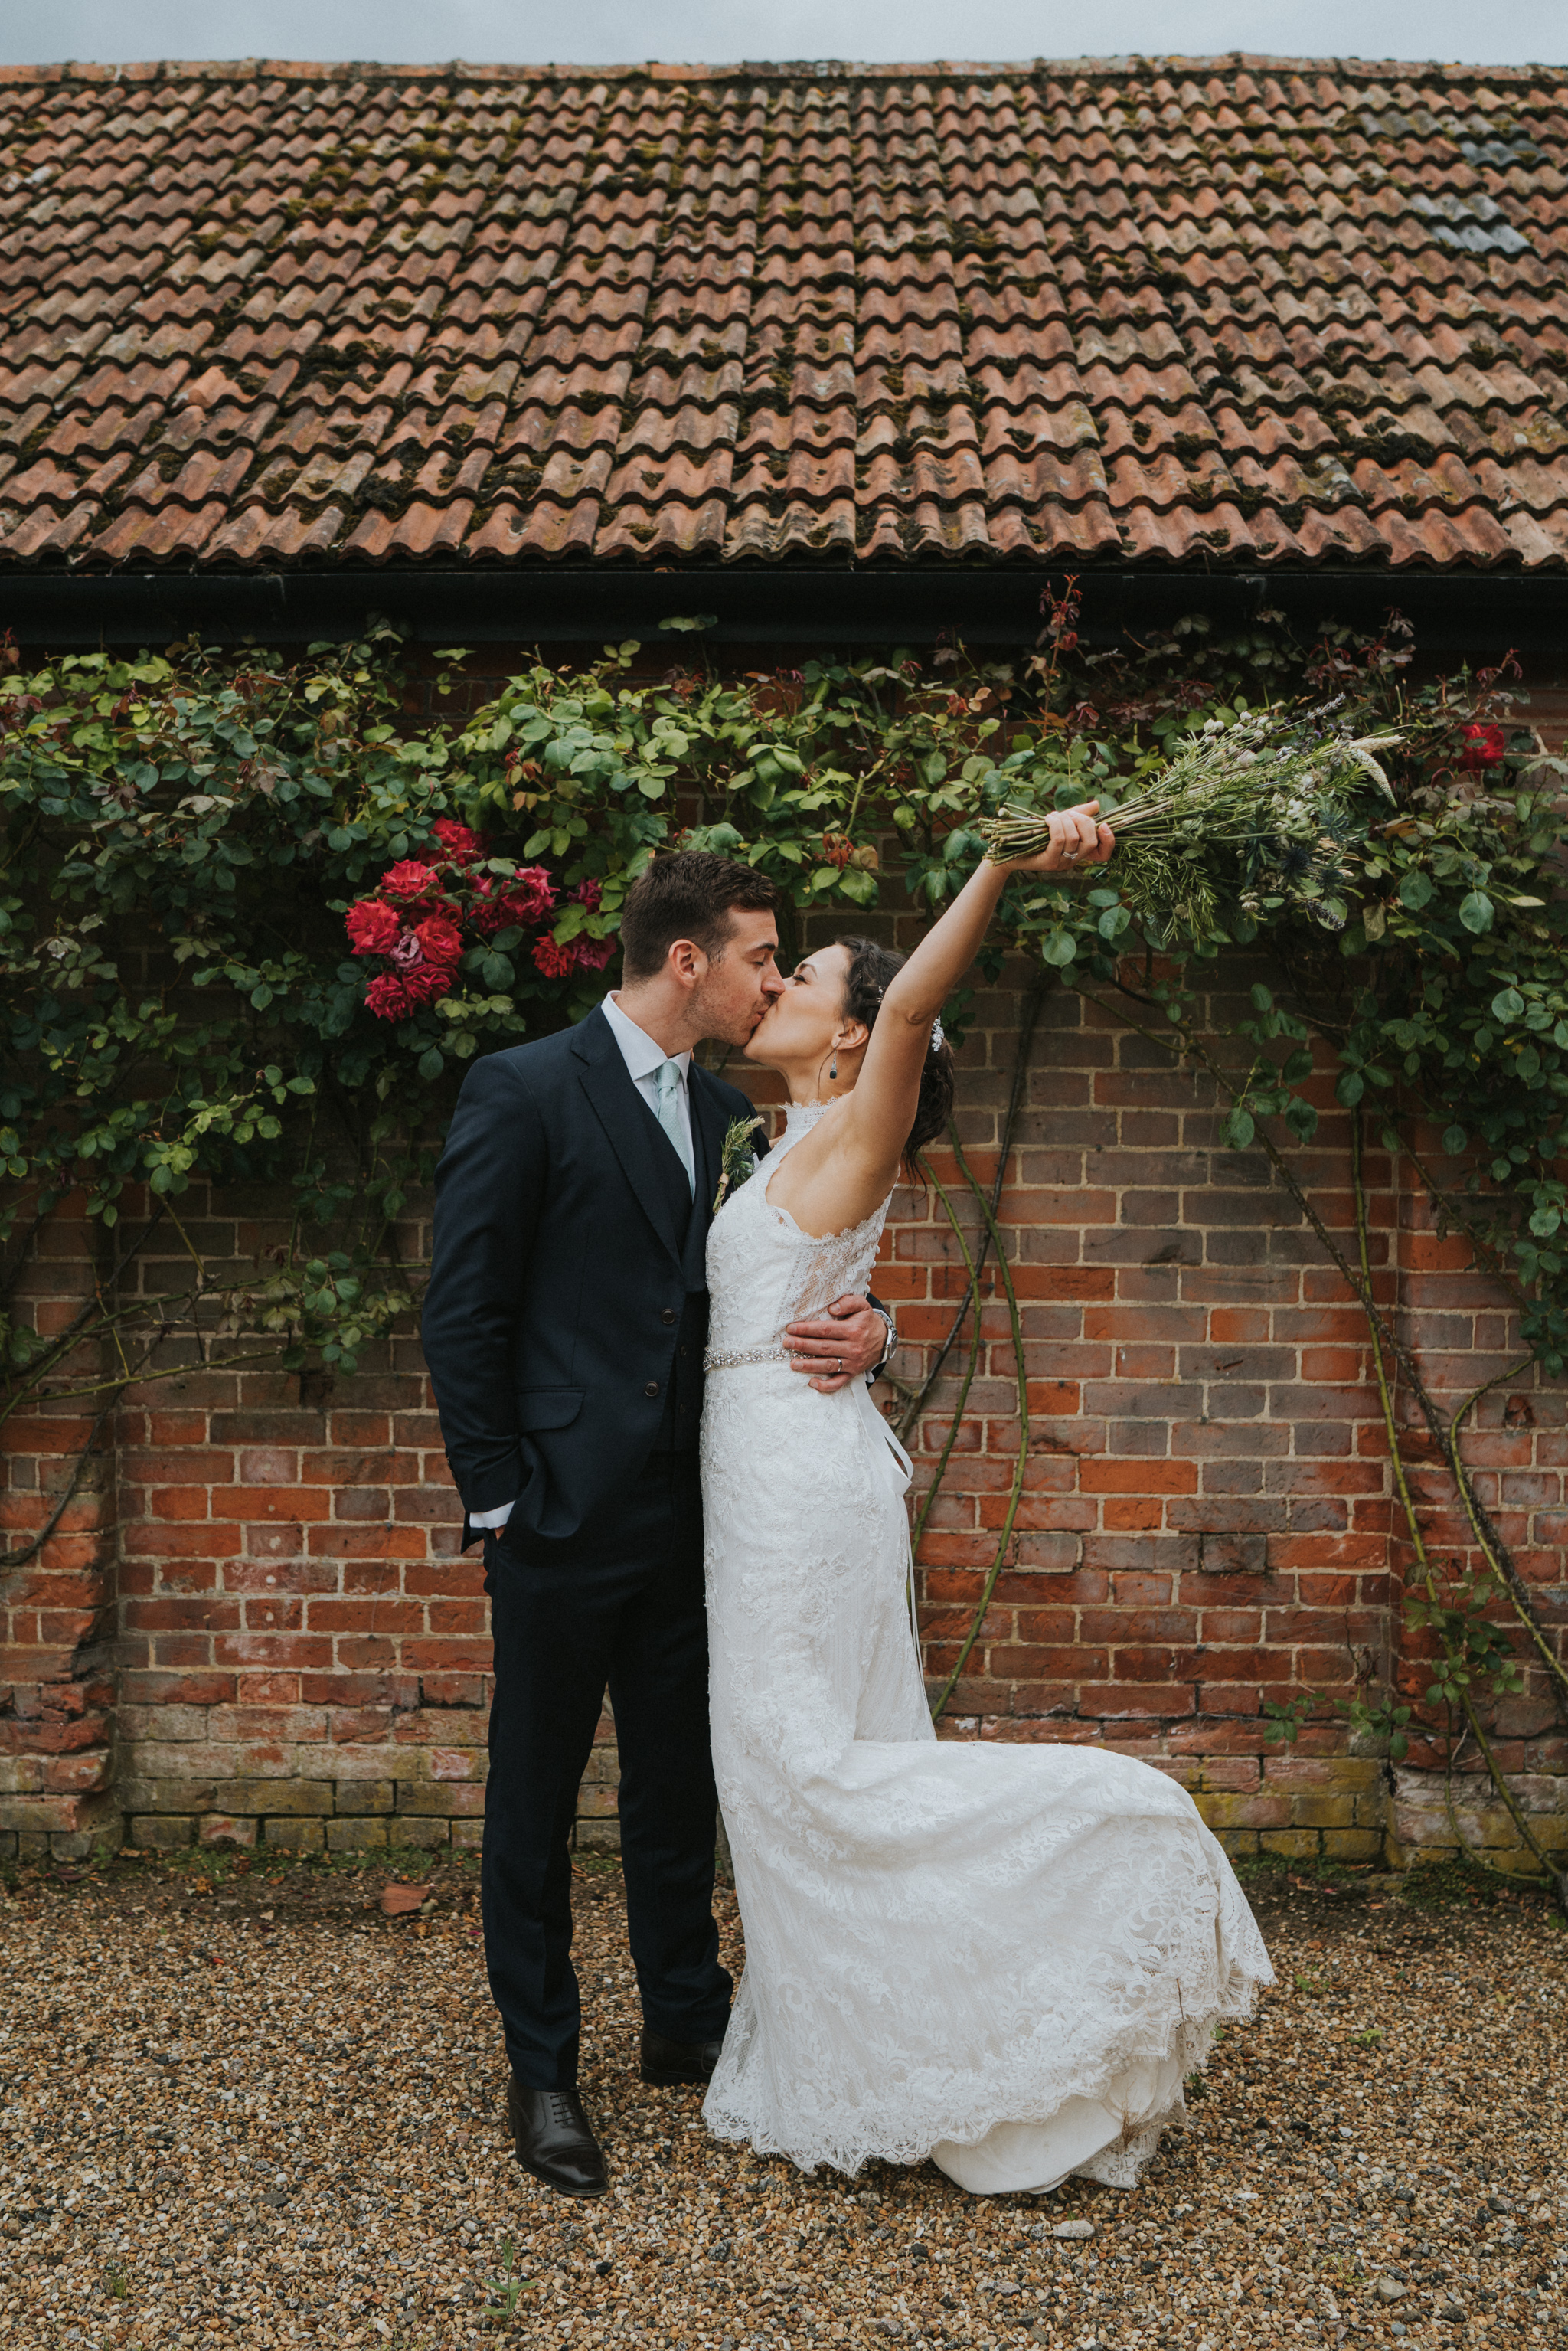 jane-patrick-smeetham-hall-barn-grace-elizabeth-colchester-essex-alternative-wedding-lifestyle-photographer-essex-suffolk-norfolk-devon (47 of 52).jpg